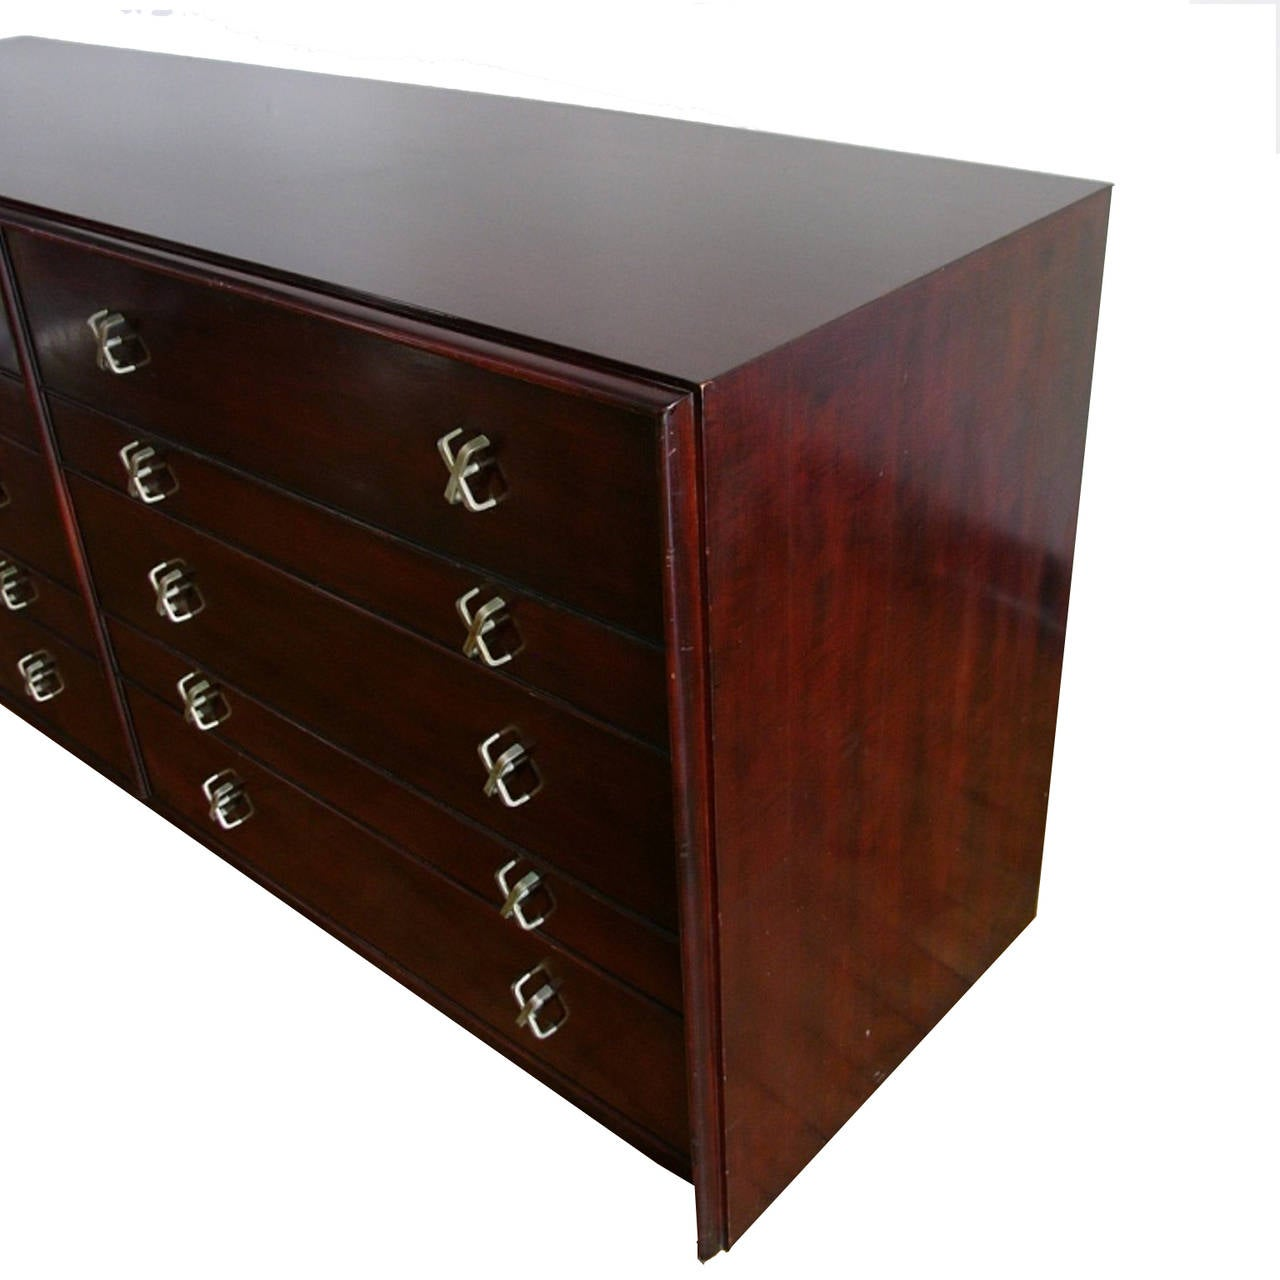 Mid-20th Century Paul Frankl for Johnson Furniture Mahogany Ten-Drawer Dresser with X Pulls For Sale